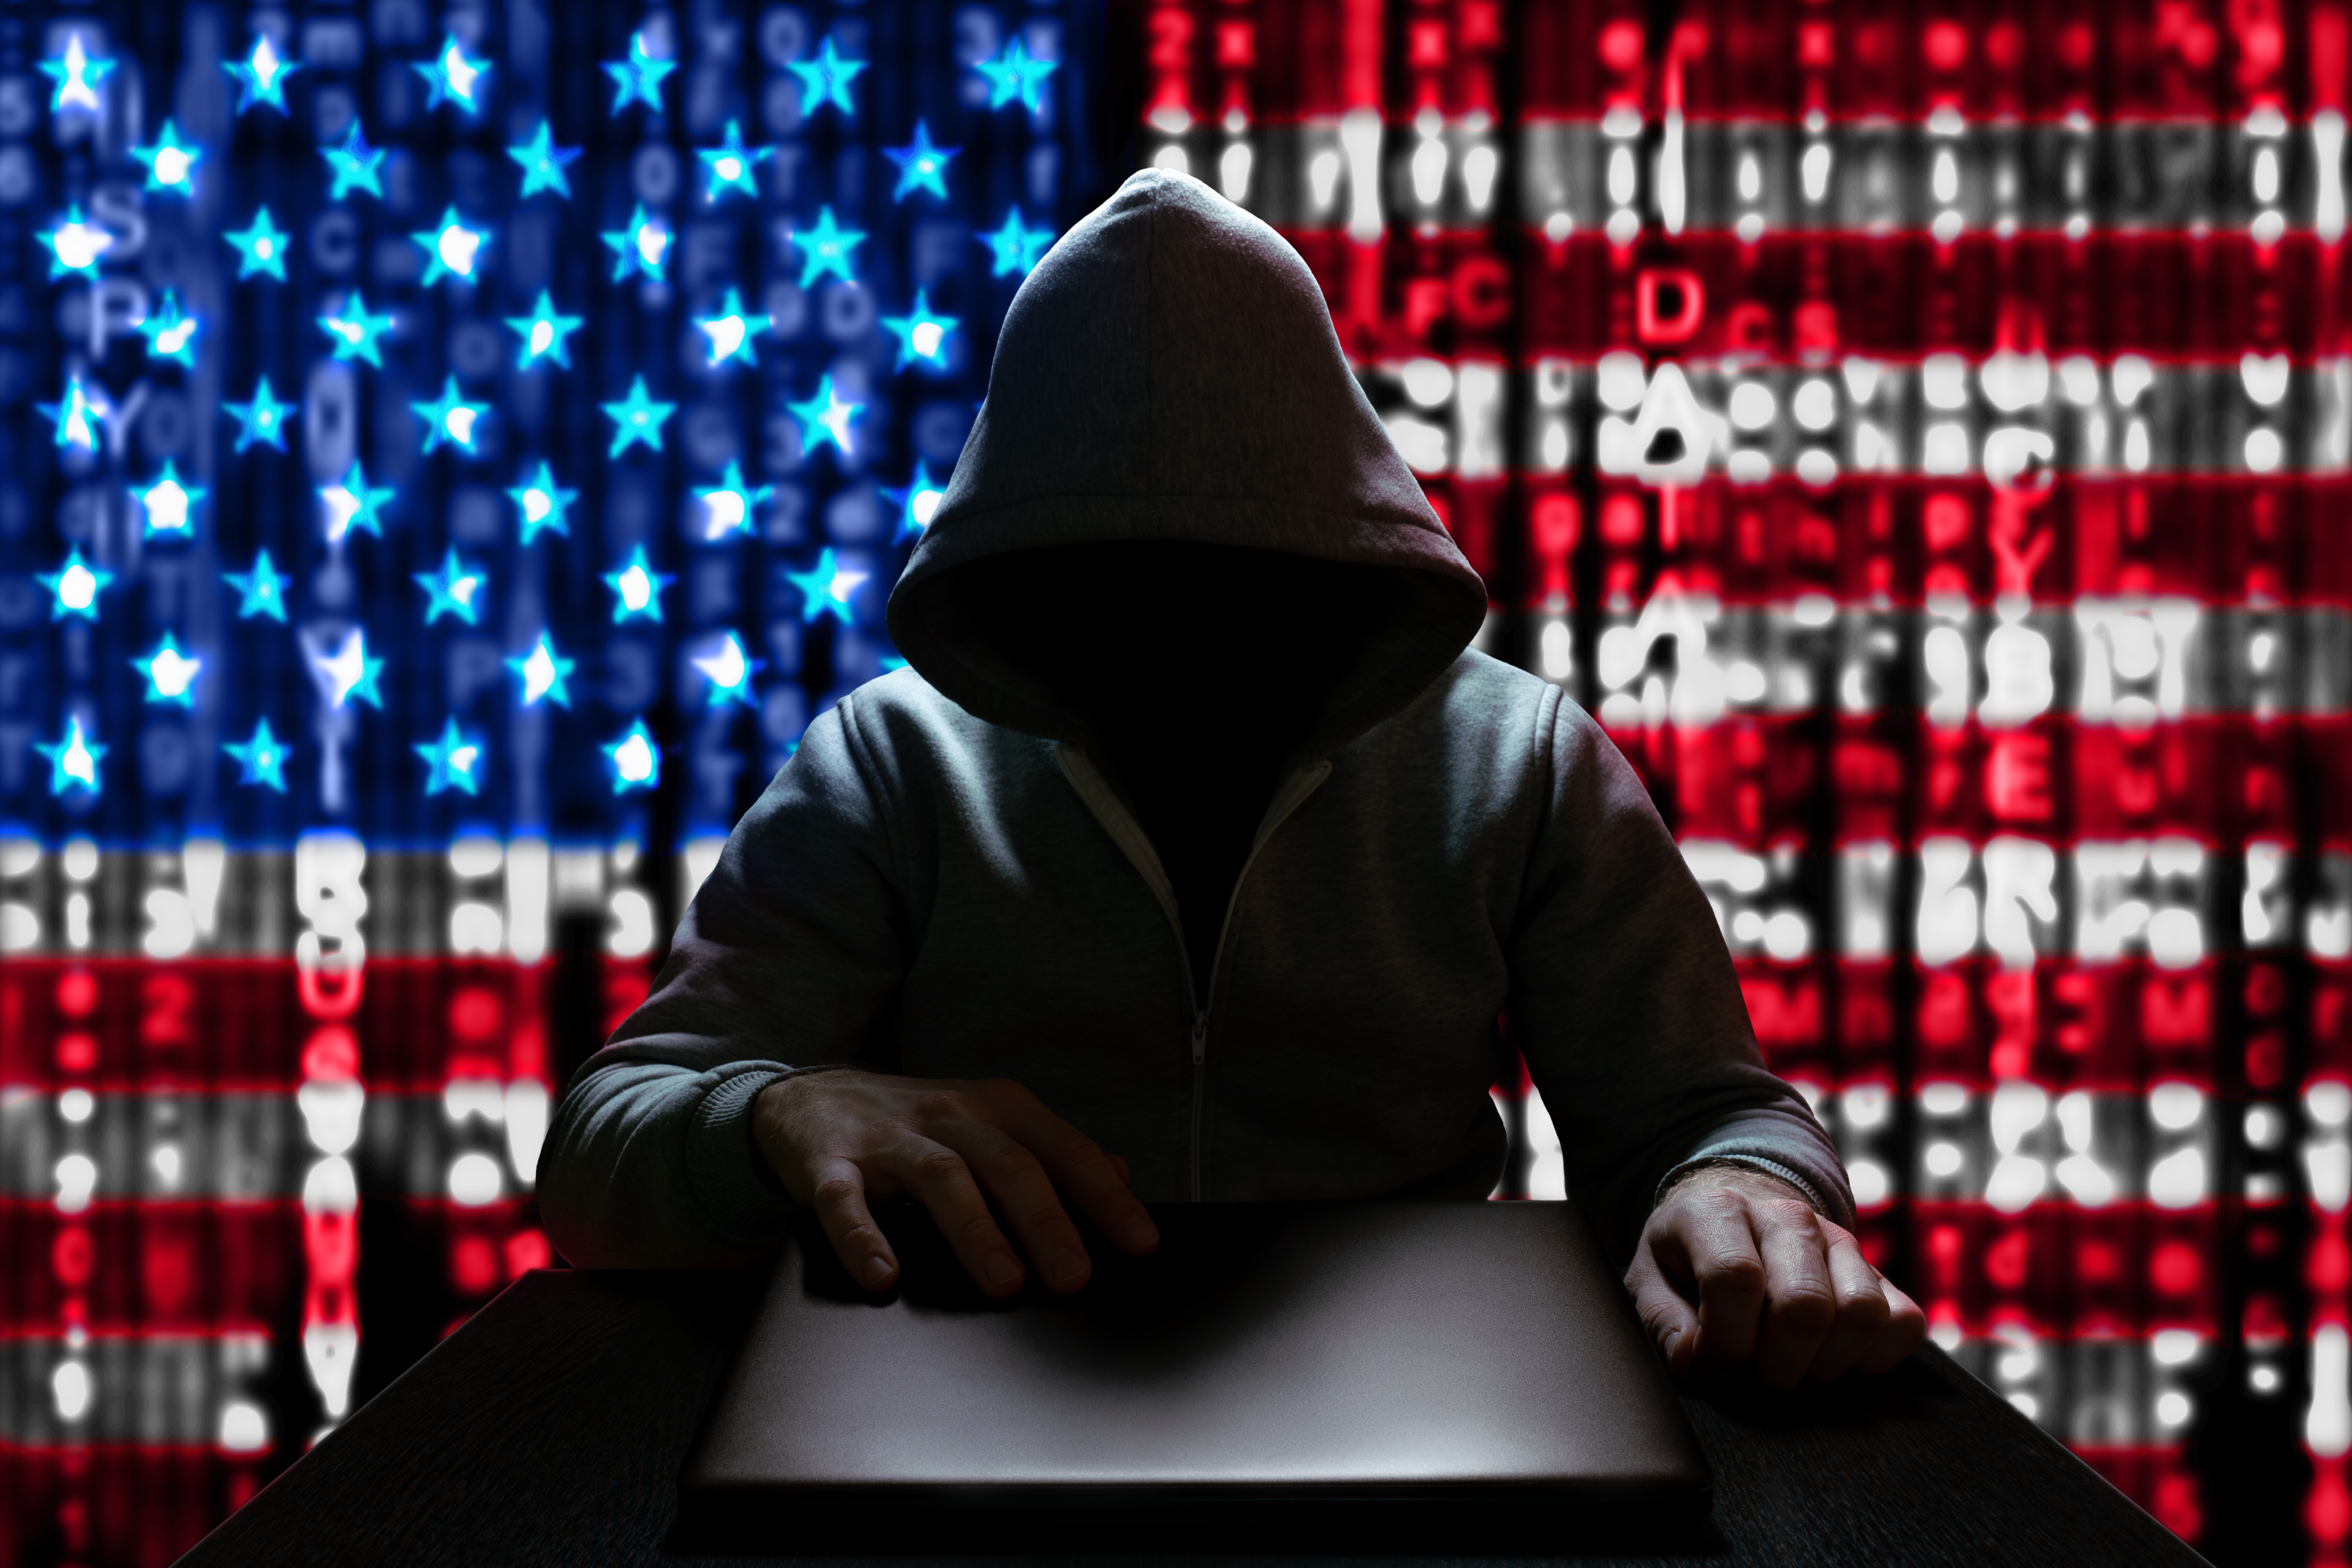 US plans 'a mix of actions' against Russia over SolarWinds cyberattack